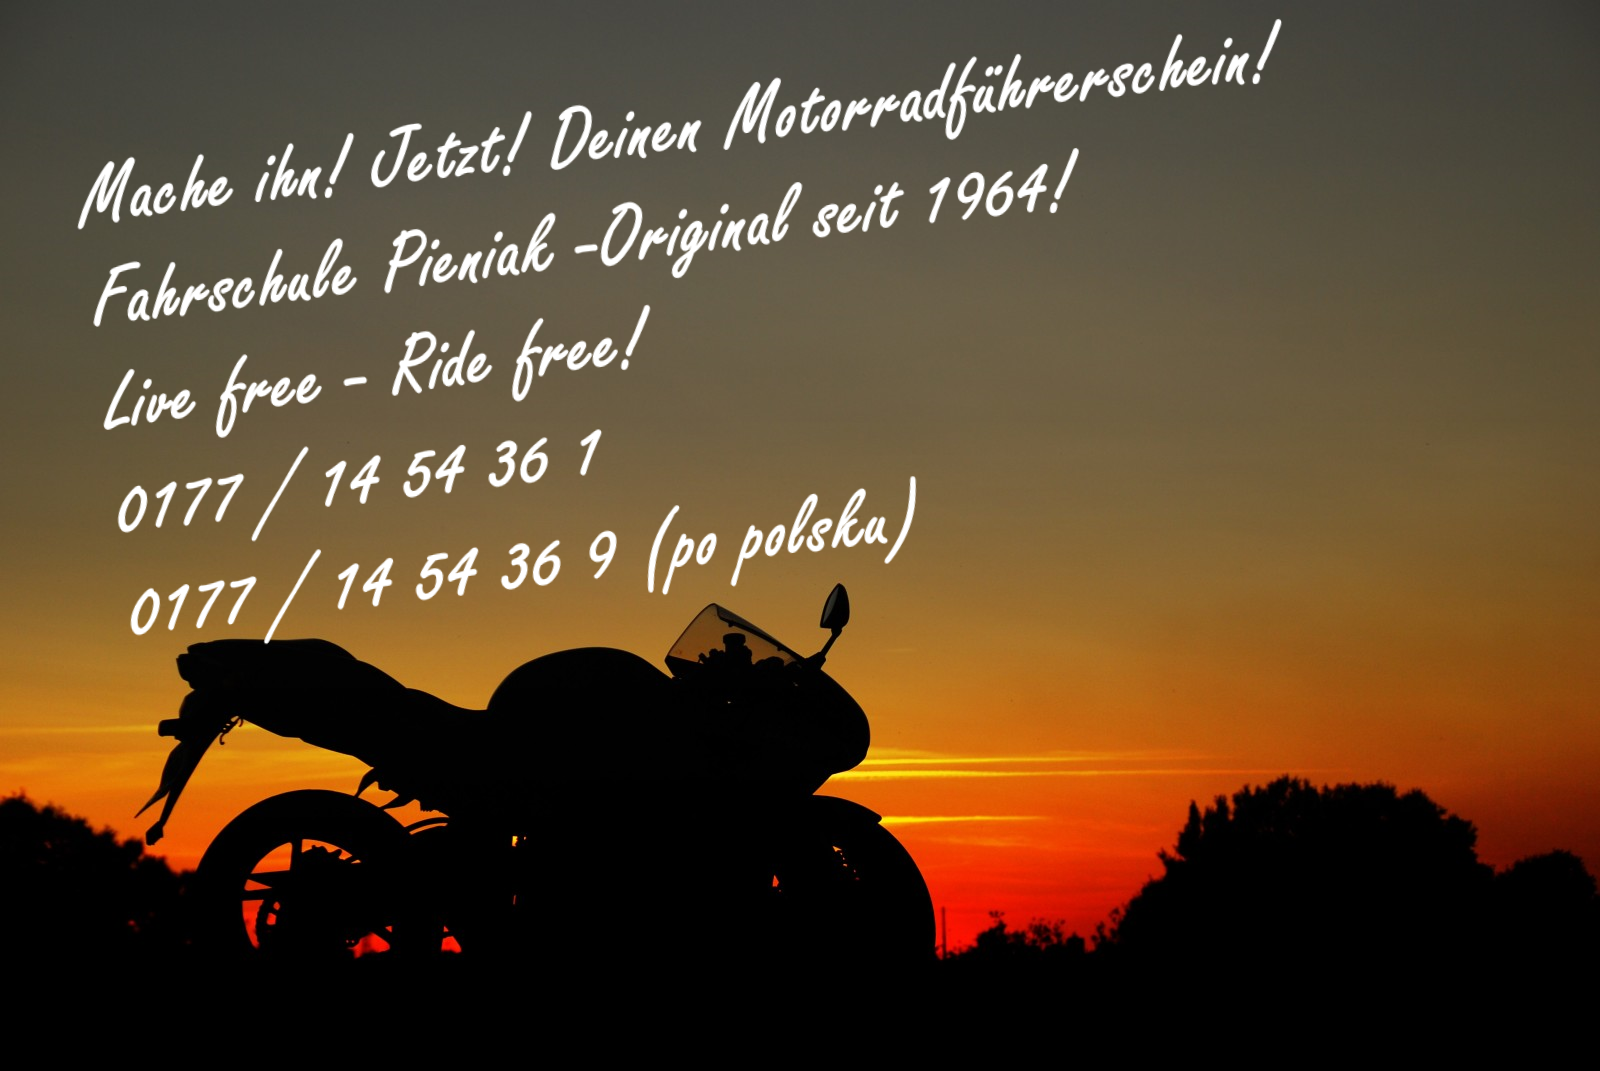 sunset_motorcycle-197100.jpg!d